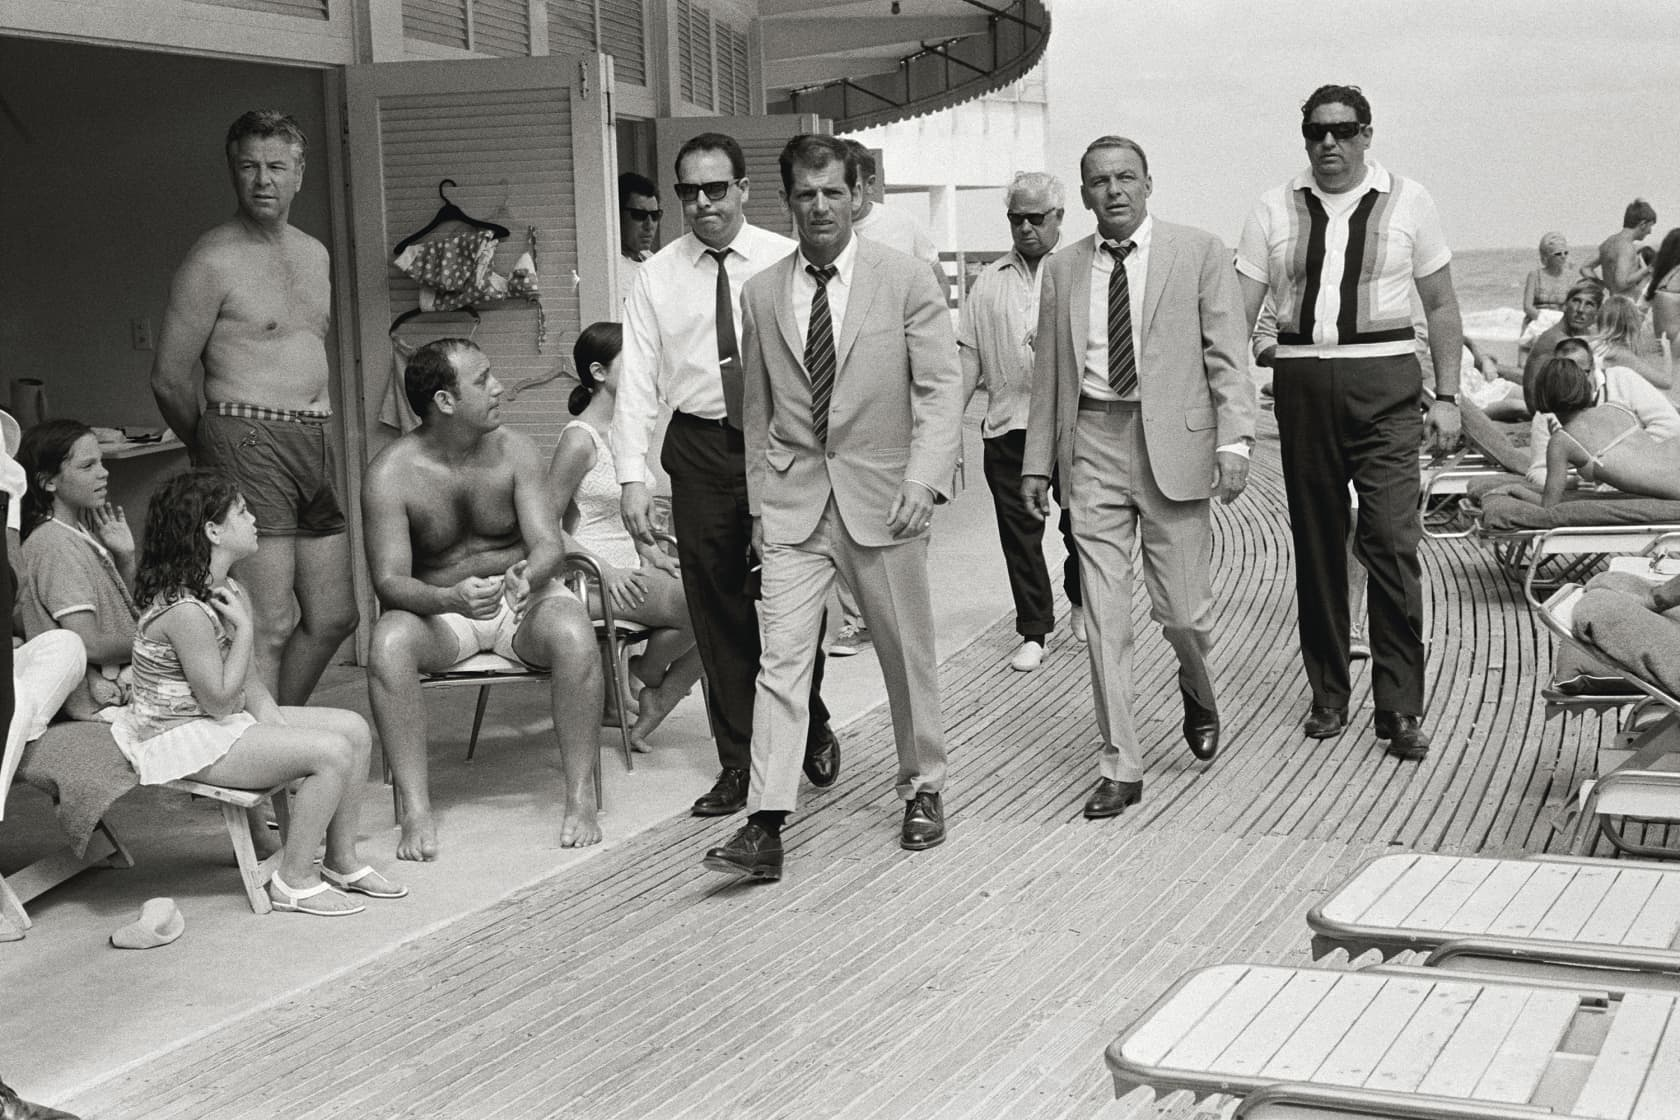 Terry O'Neill Frank Sinatra, Miami Boardwalk - Black & White Lifetime Platinum Print *available in other mediums & editions